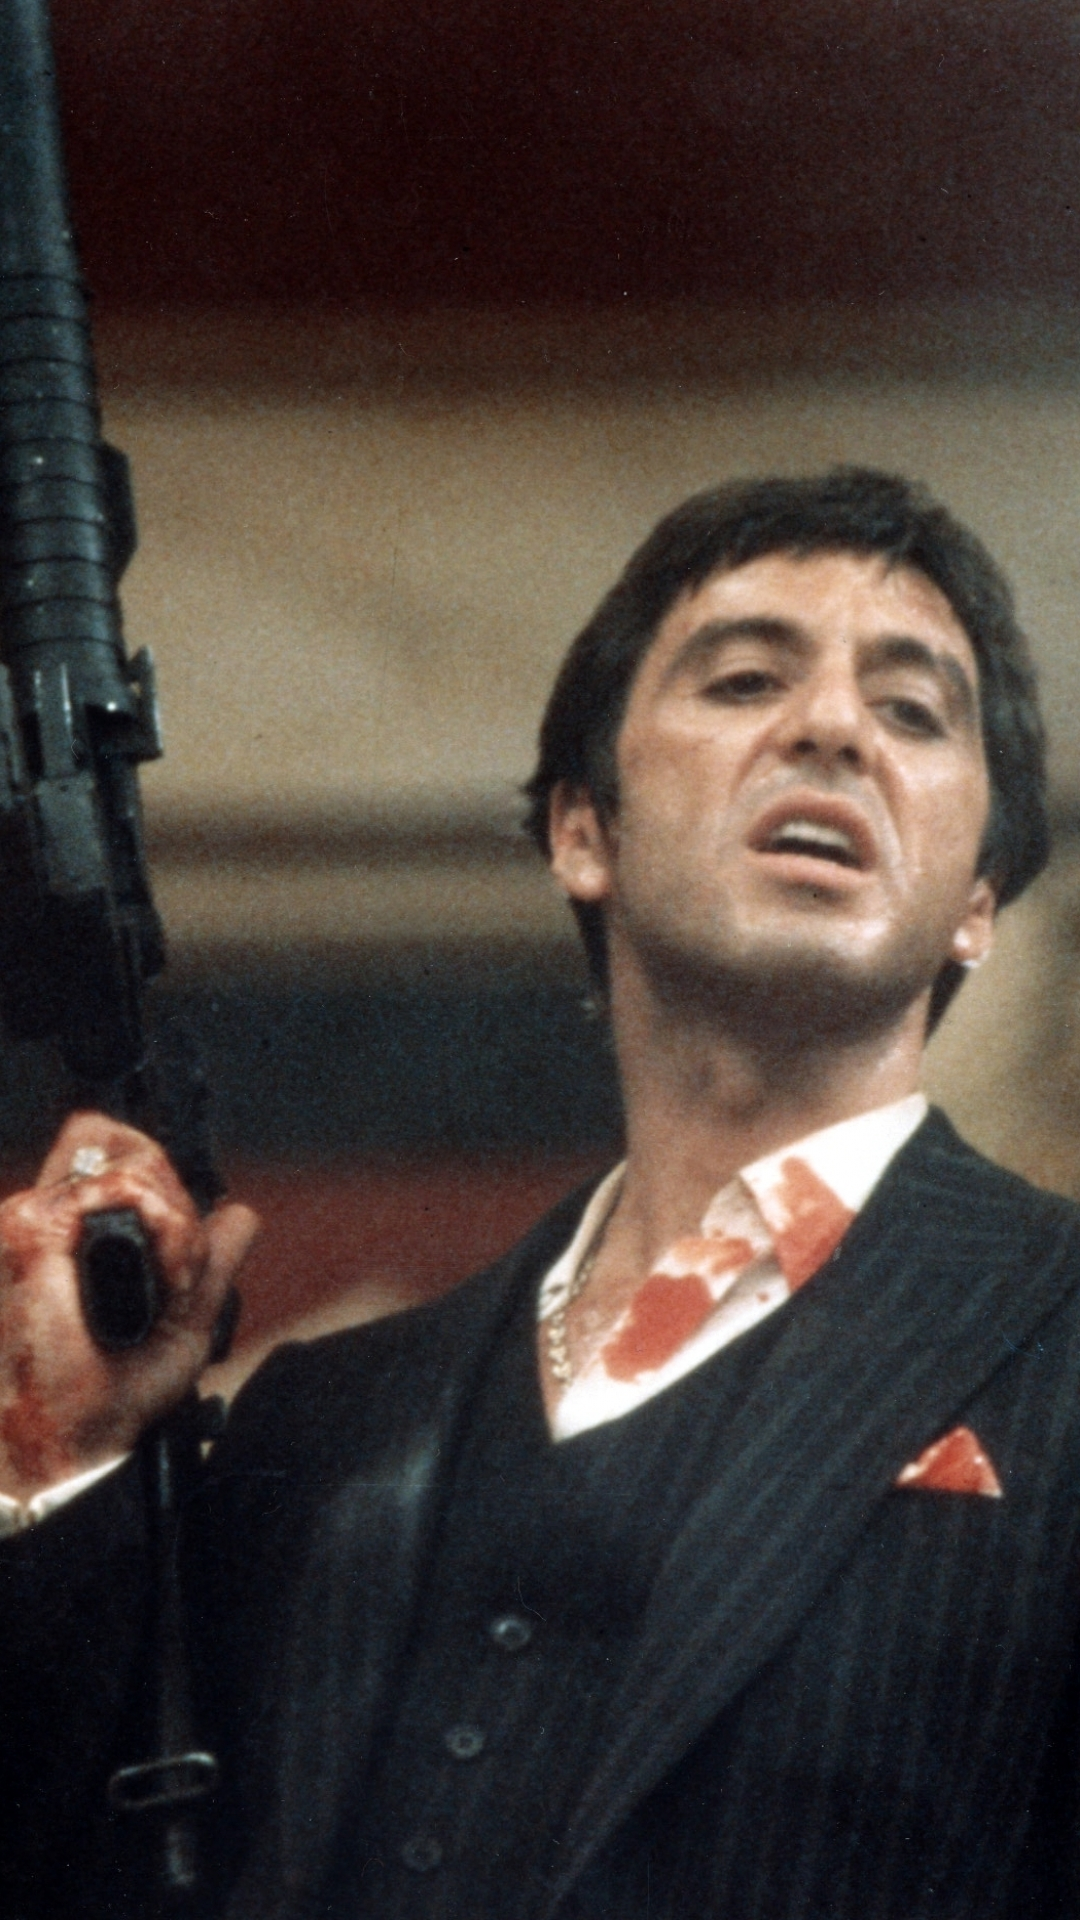 iPhone 6 Plus - Movie/Scarface - Wallpaper ID: 211596 Al Pacino